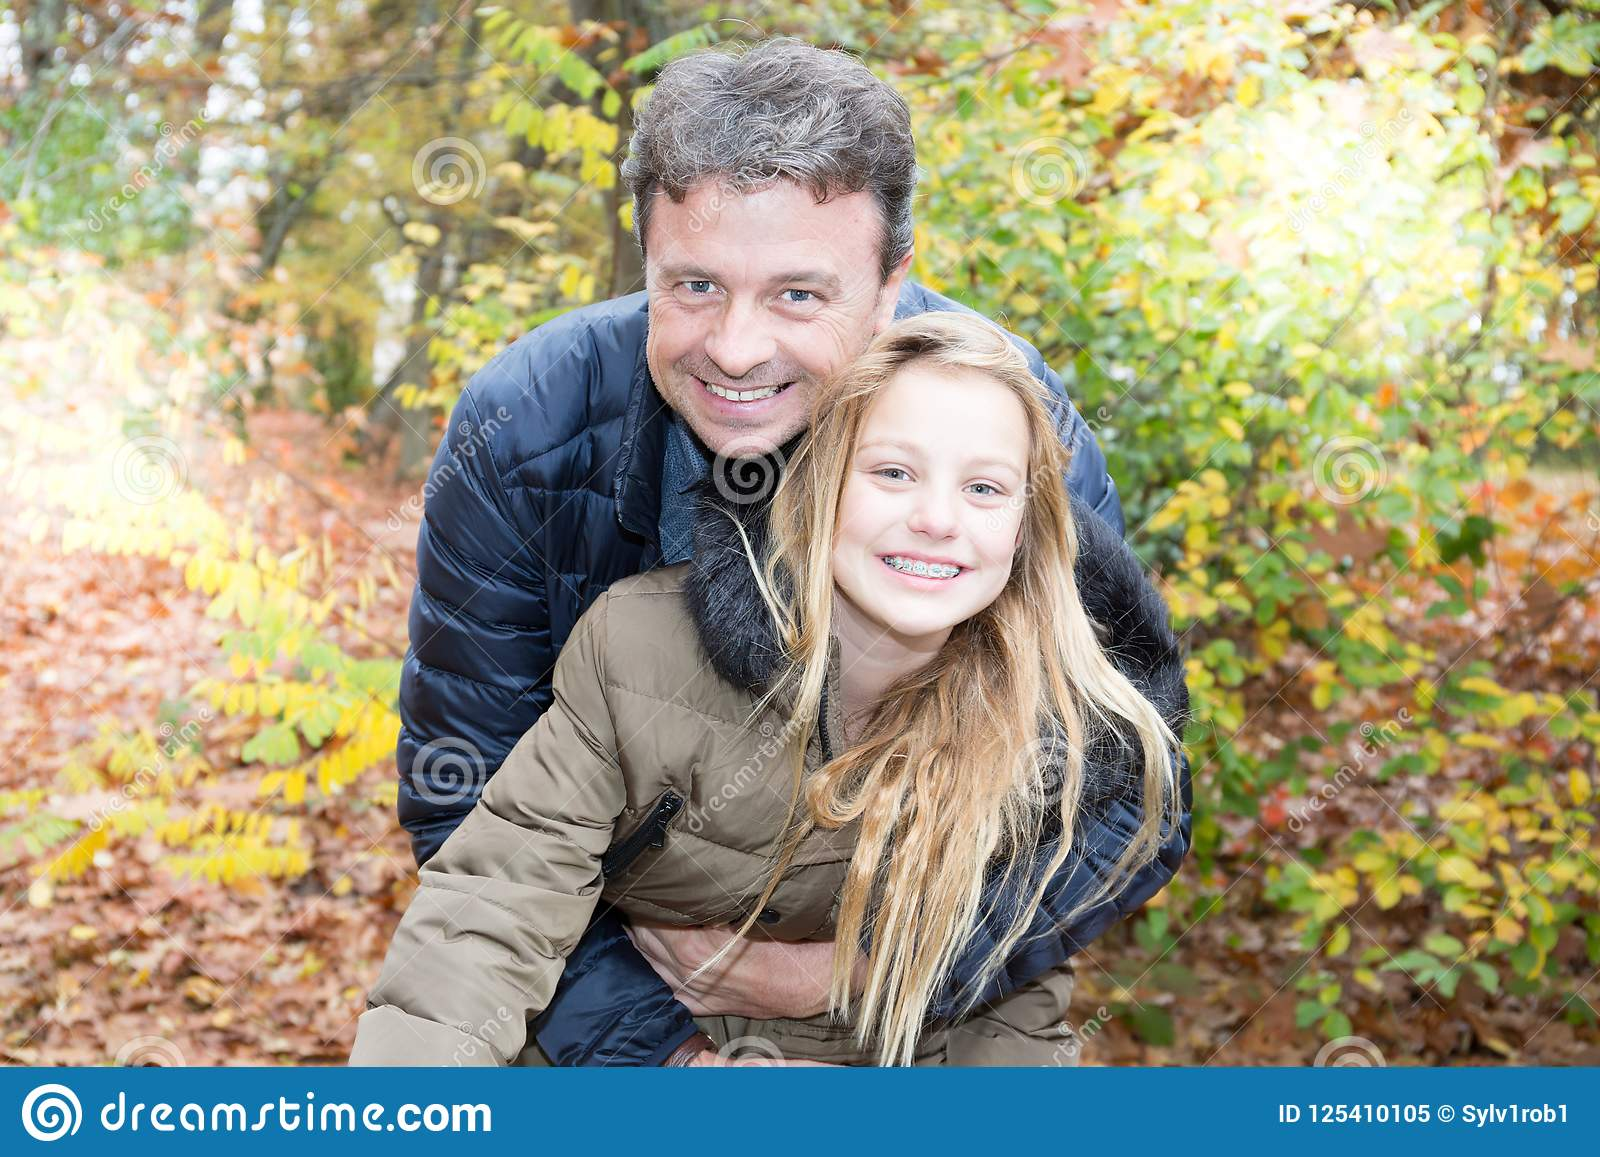 Father and daughter in the autumn park play laughing pretty blonde girl hugs her dad